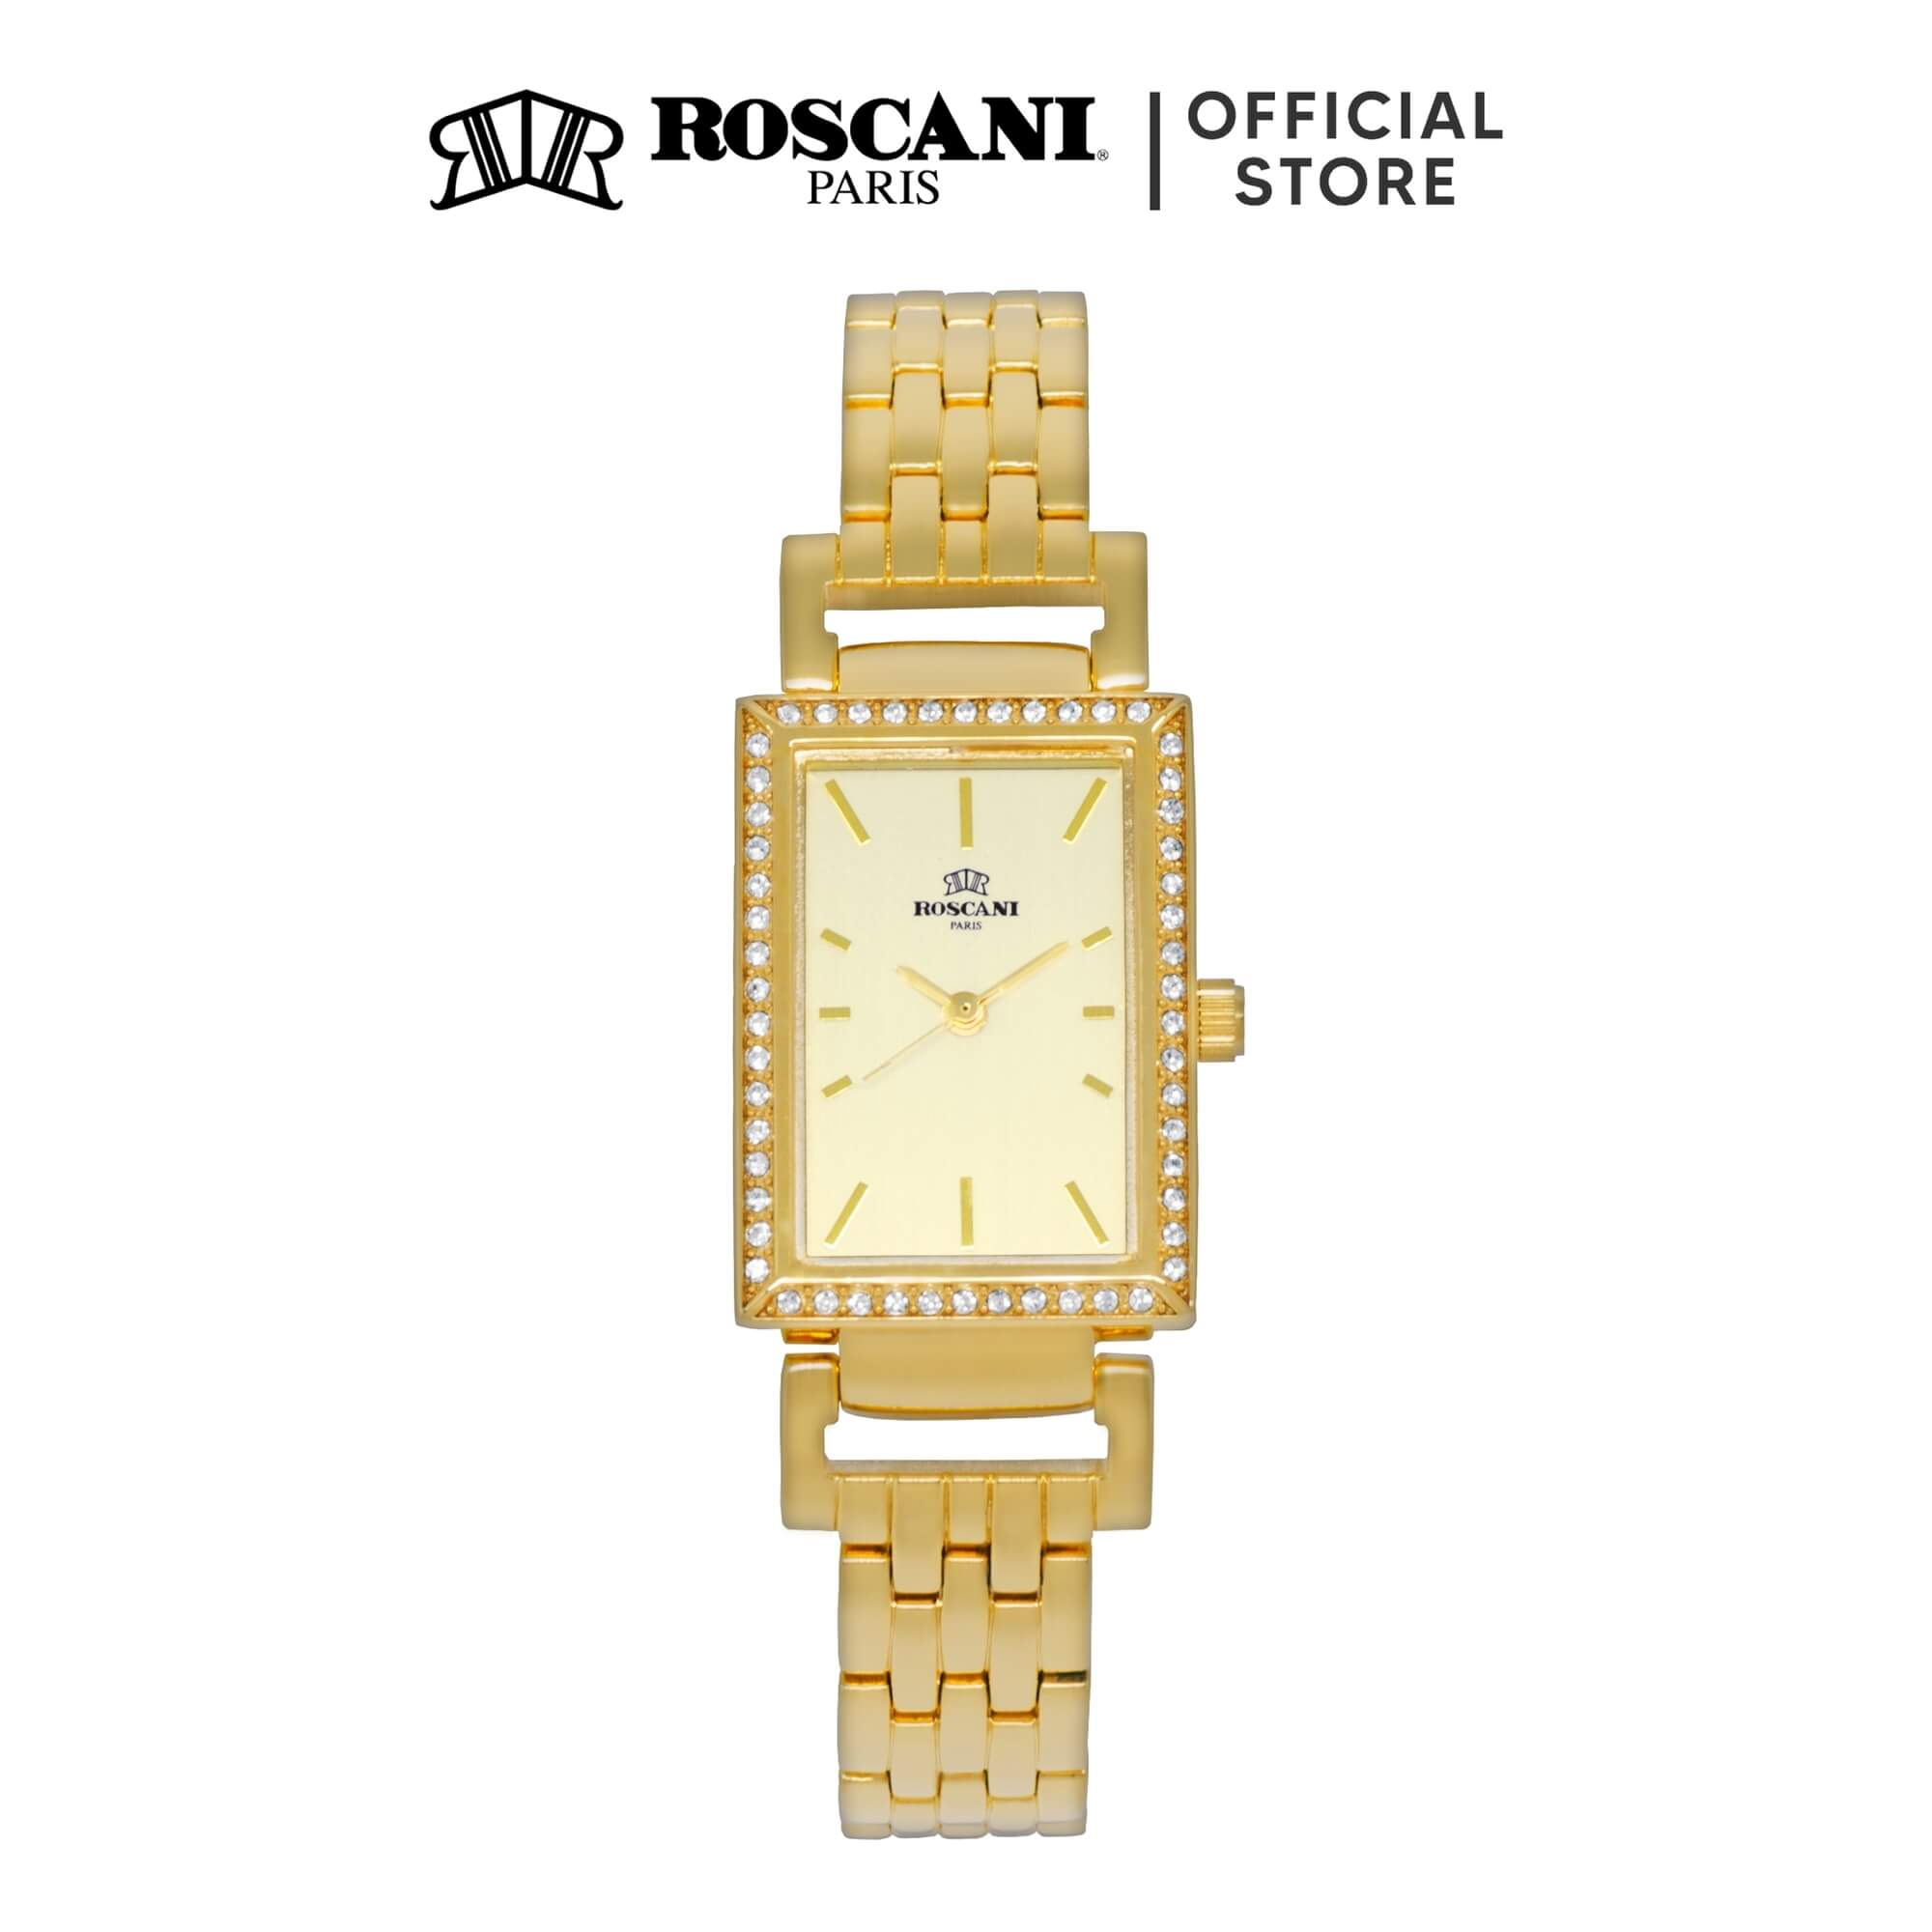 Roscani Francesca B59 (Aluminium Brushed Dial) Bracelet Women Watch